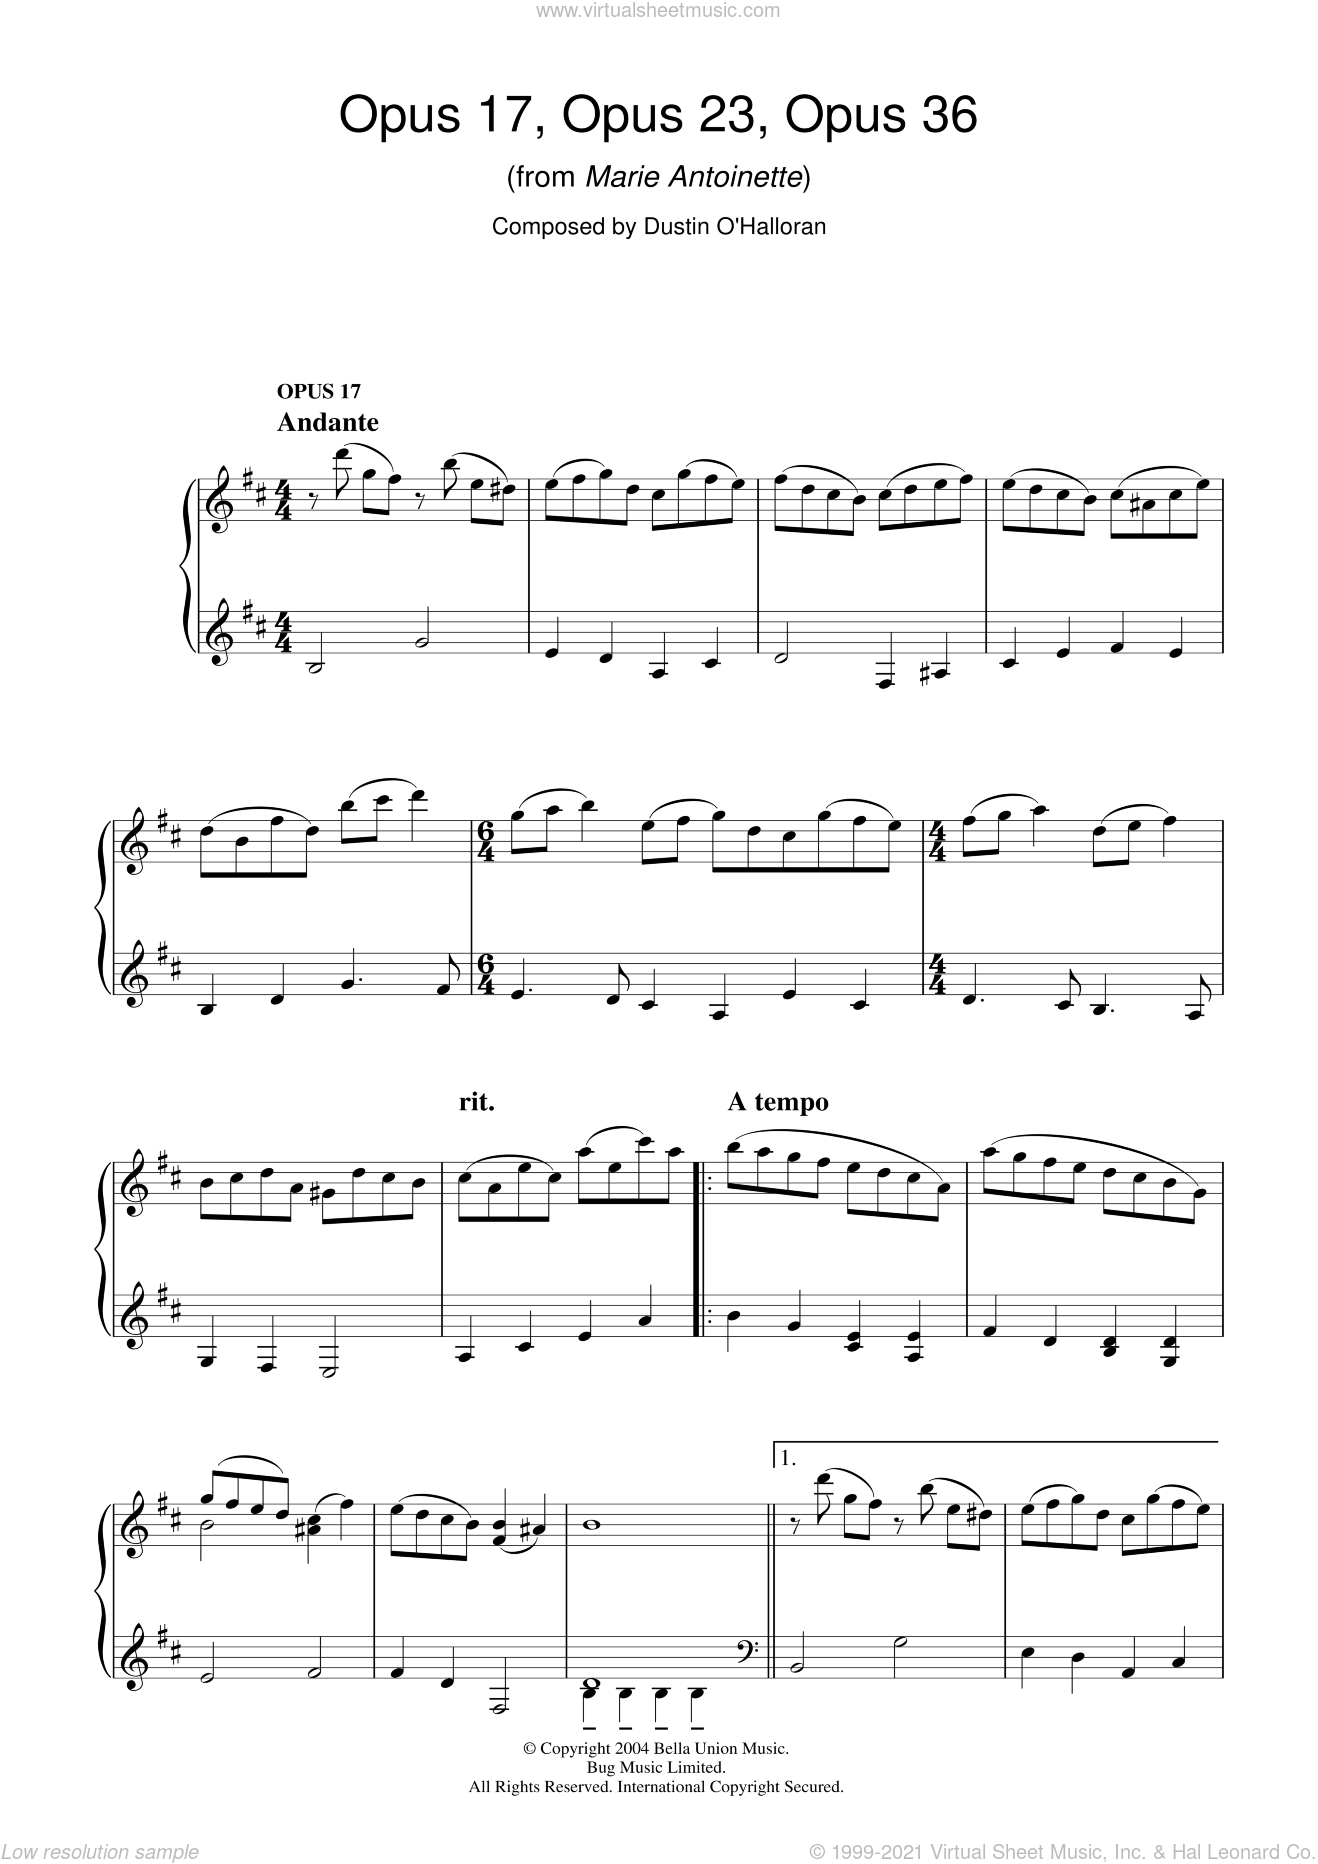 Opus 17, Opus 23, Opus 36 (from Marie Antoinette) sheet music for piano solo by Dustin O'Halloran, intermediate skill level